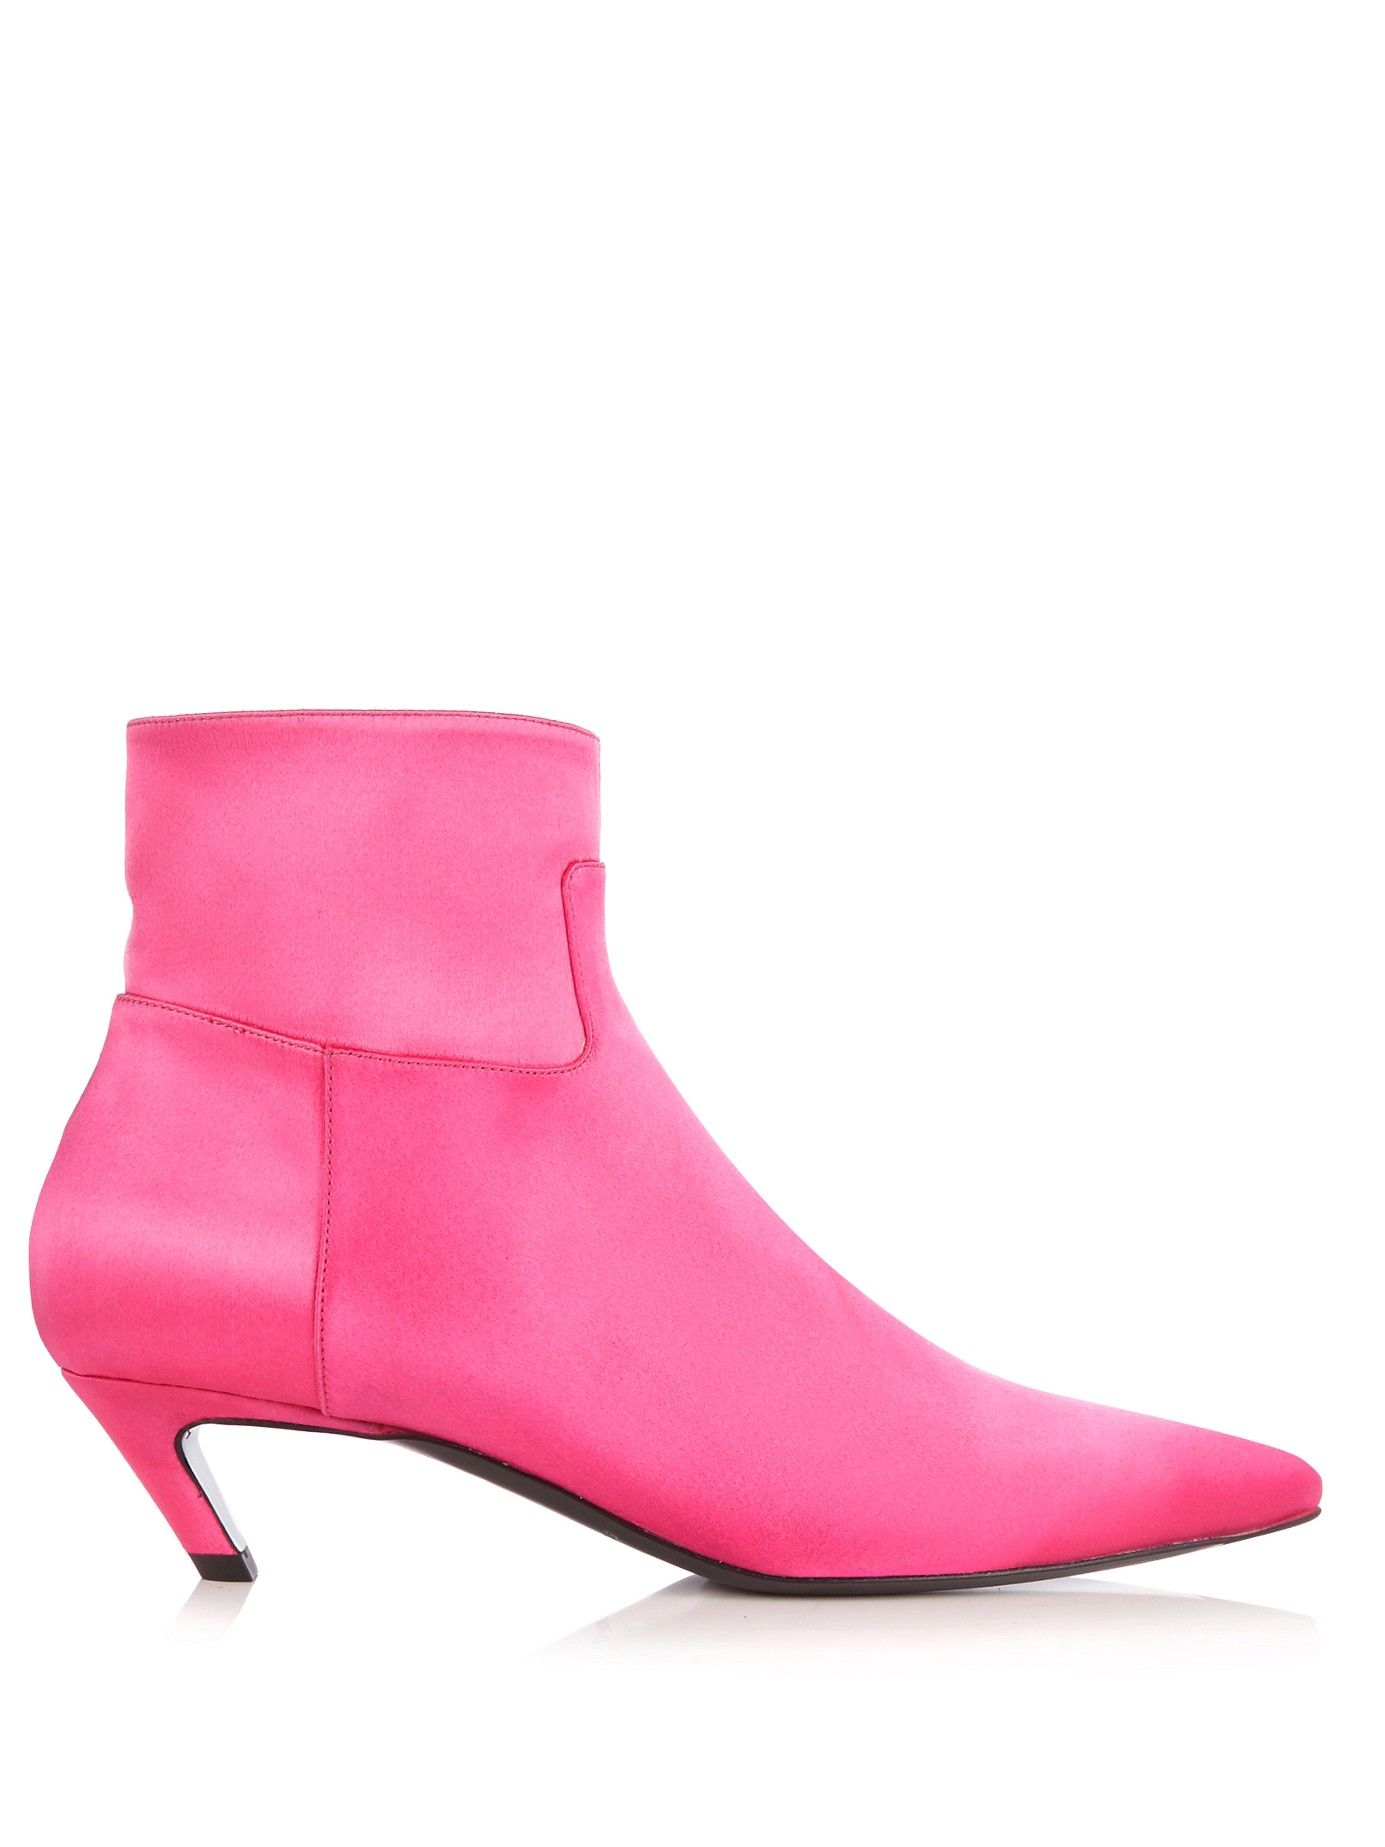 Slant-heel satin ankle boot | Balenciaga | MATCHESFASHION.COM US